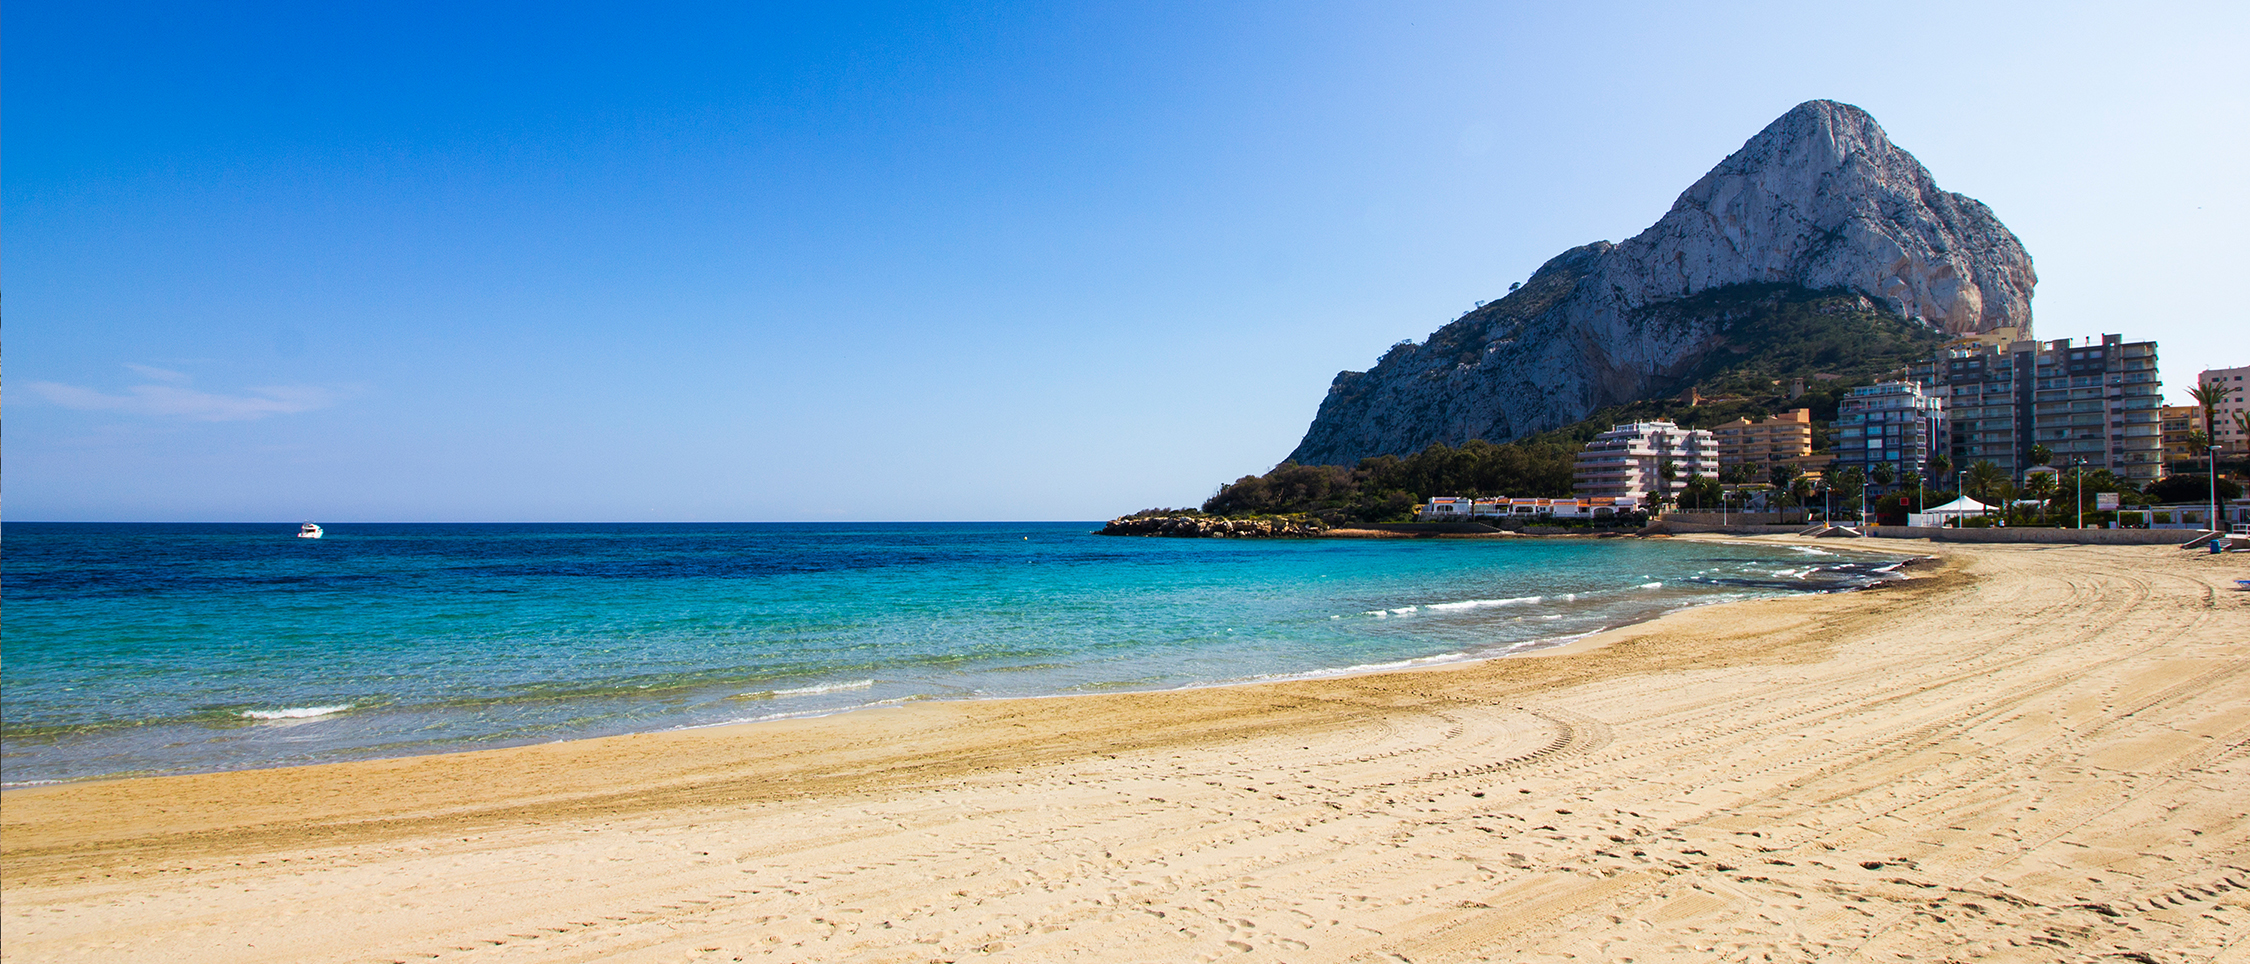 How to Start and End Your Day When Living in Calpe?